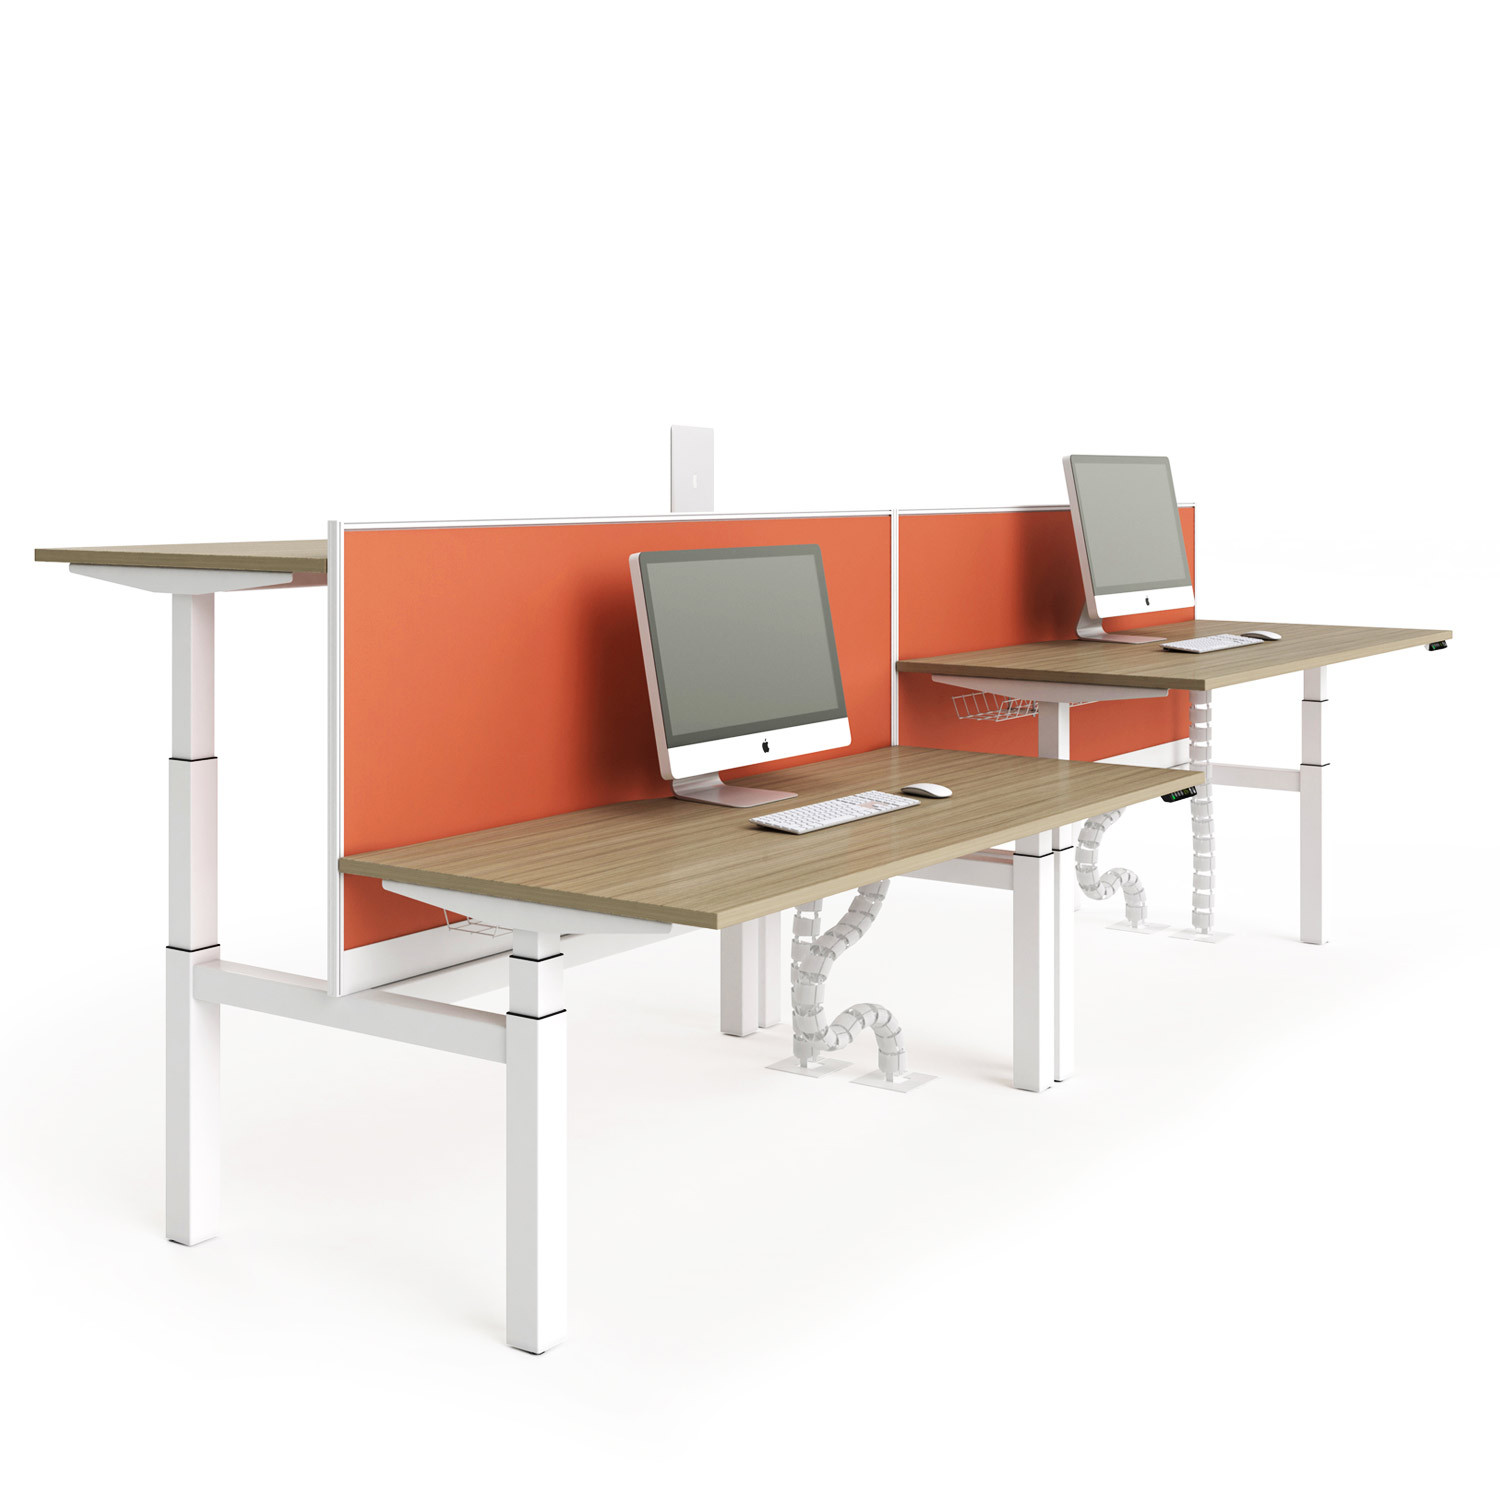 Cosine Sit-Stand Bench Desks